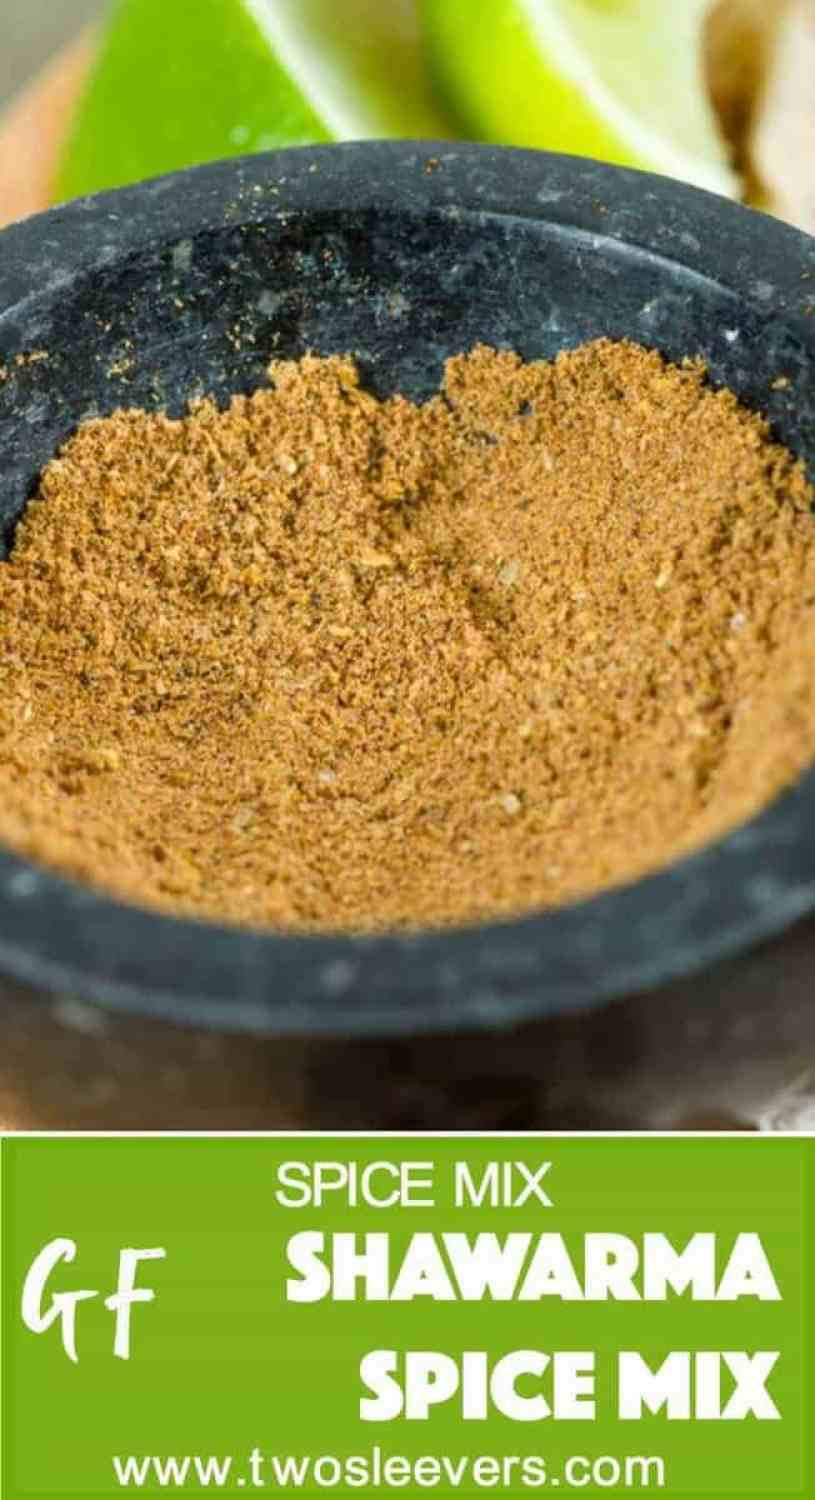 Make your own shawarma spice mix and use it with a variety of meats including chicken, beef, lamb, ground beef, or even green beans.